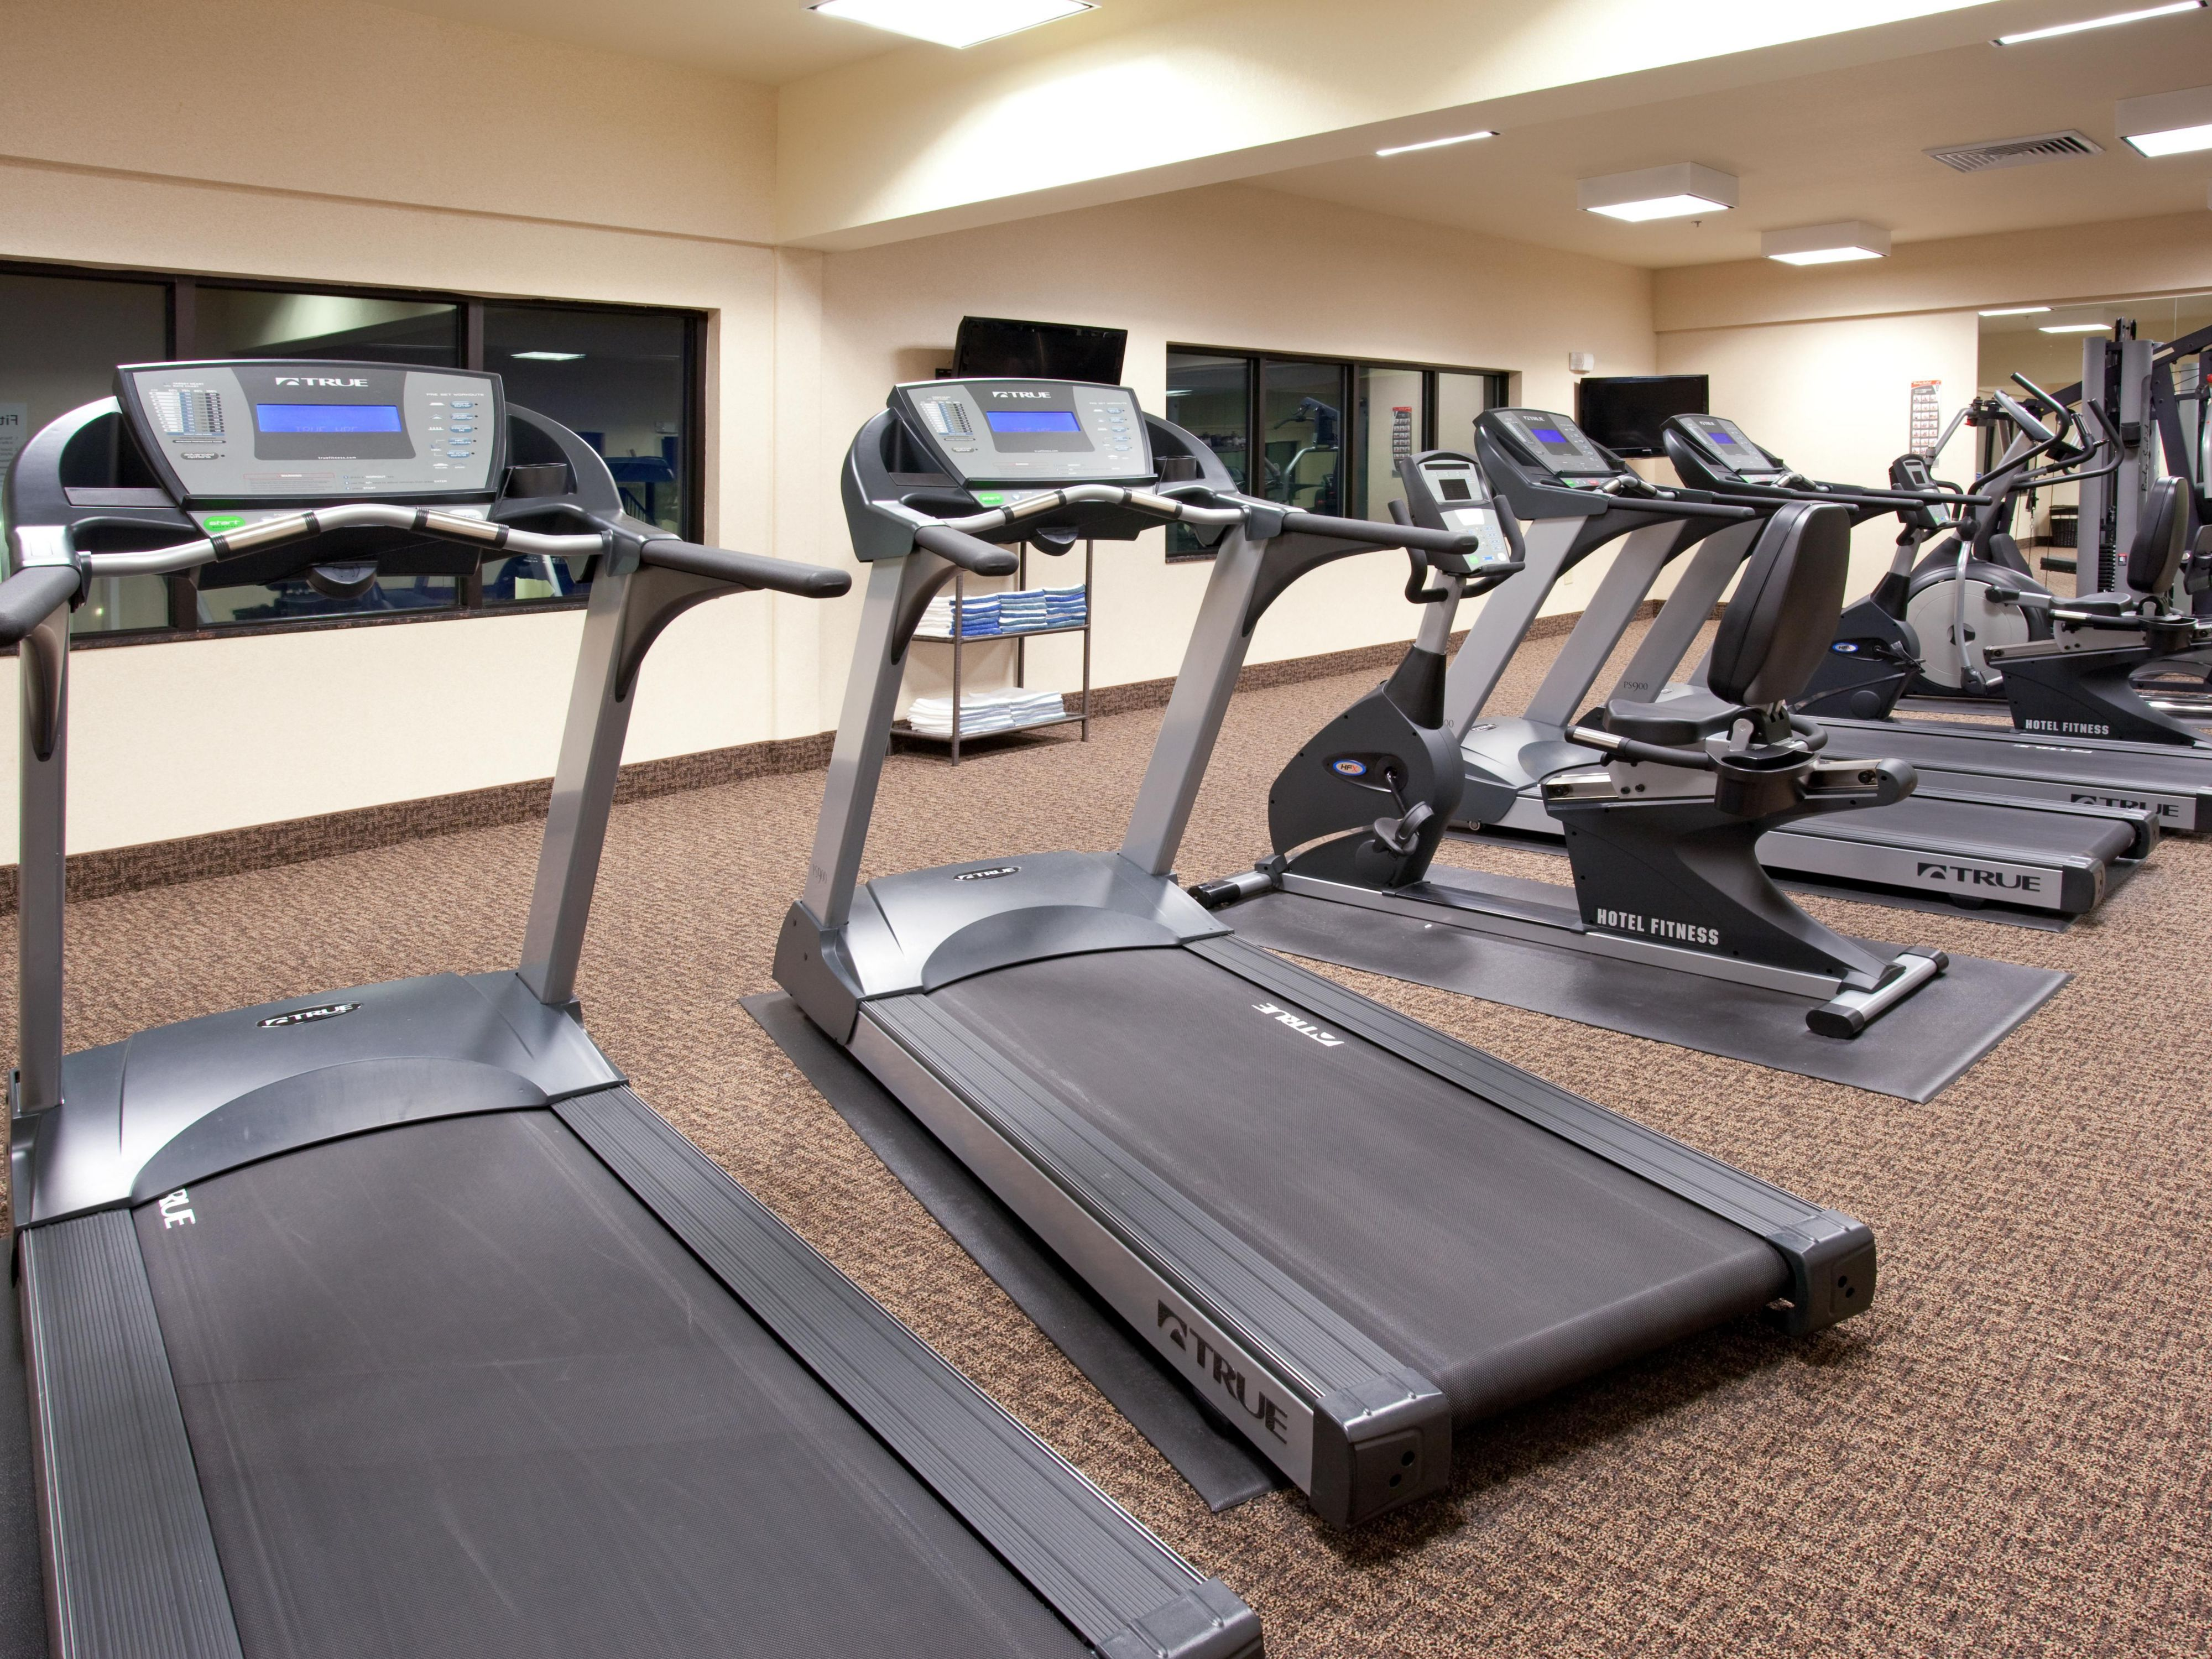 Fitness Center with a great selection of equipment